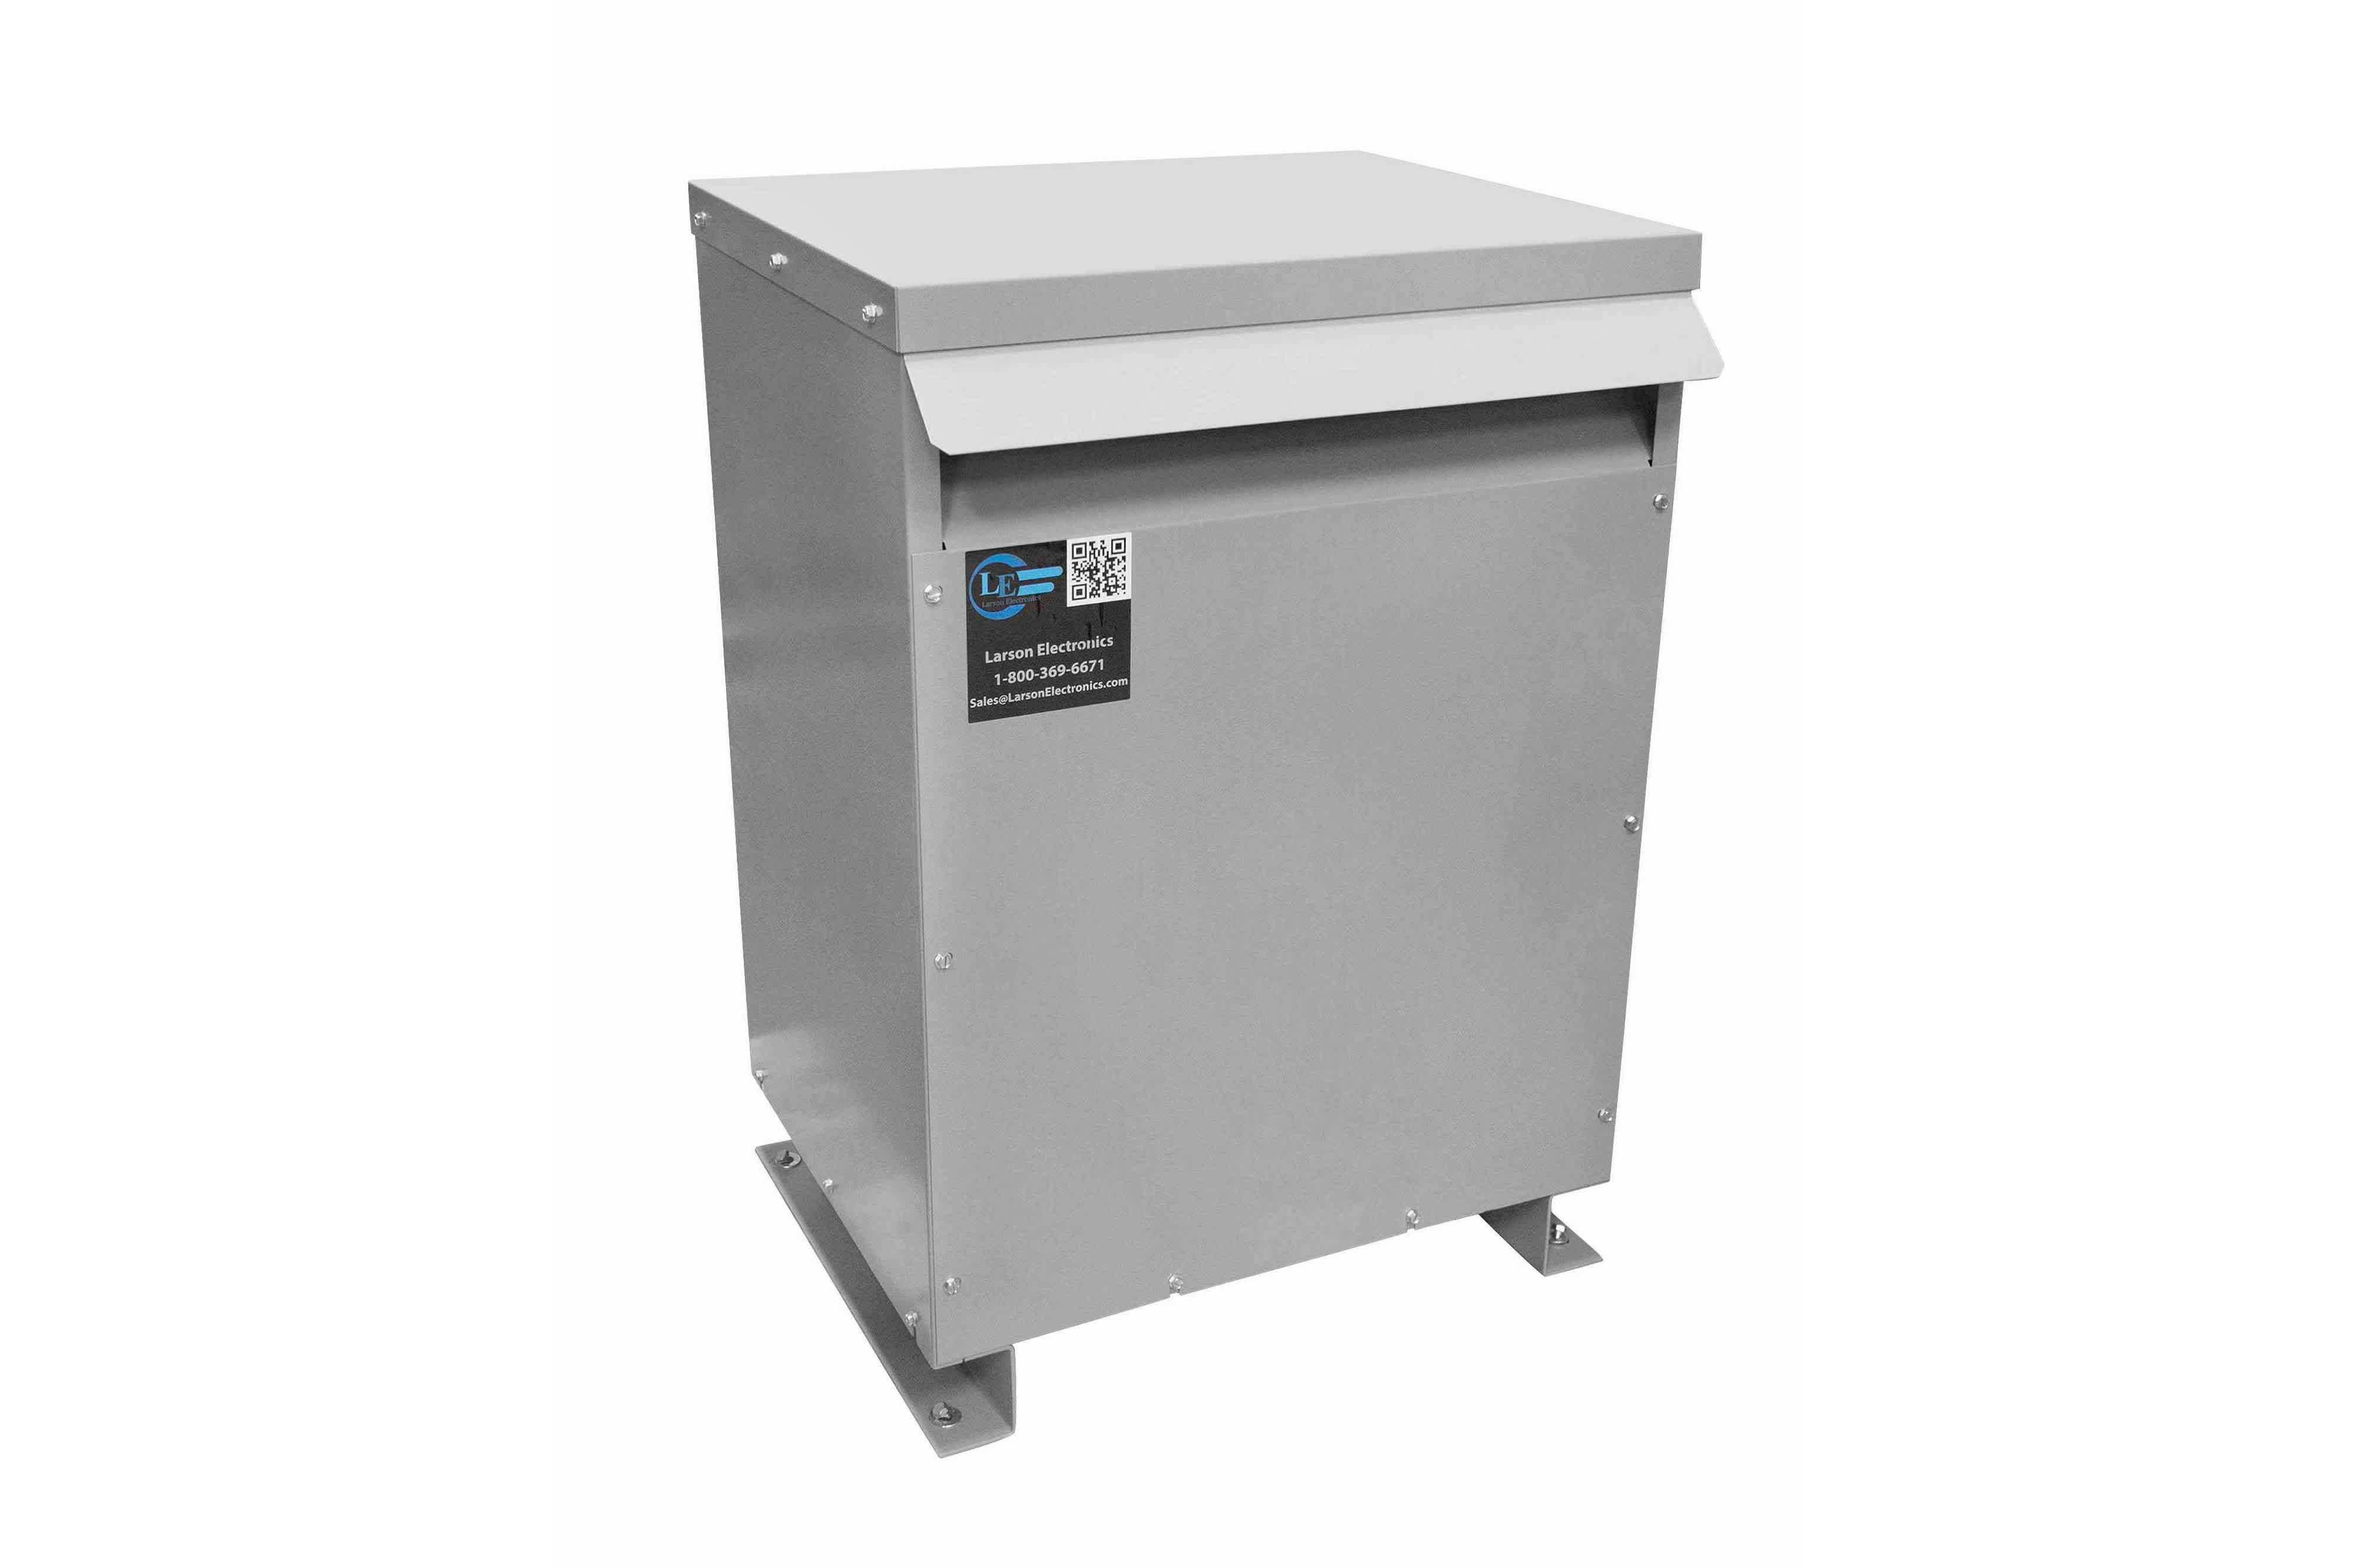 167 kVA 3PH DOE Transformer, 230V Delta Primary, 208Y/120 Wye-N Secondary, N3R, Ventilated, 60 Hz